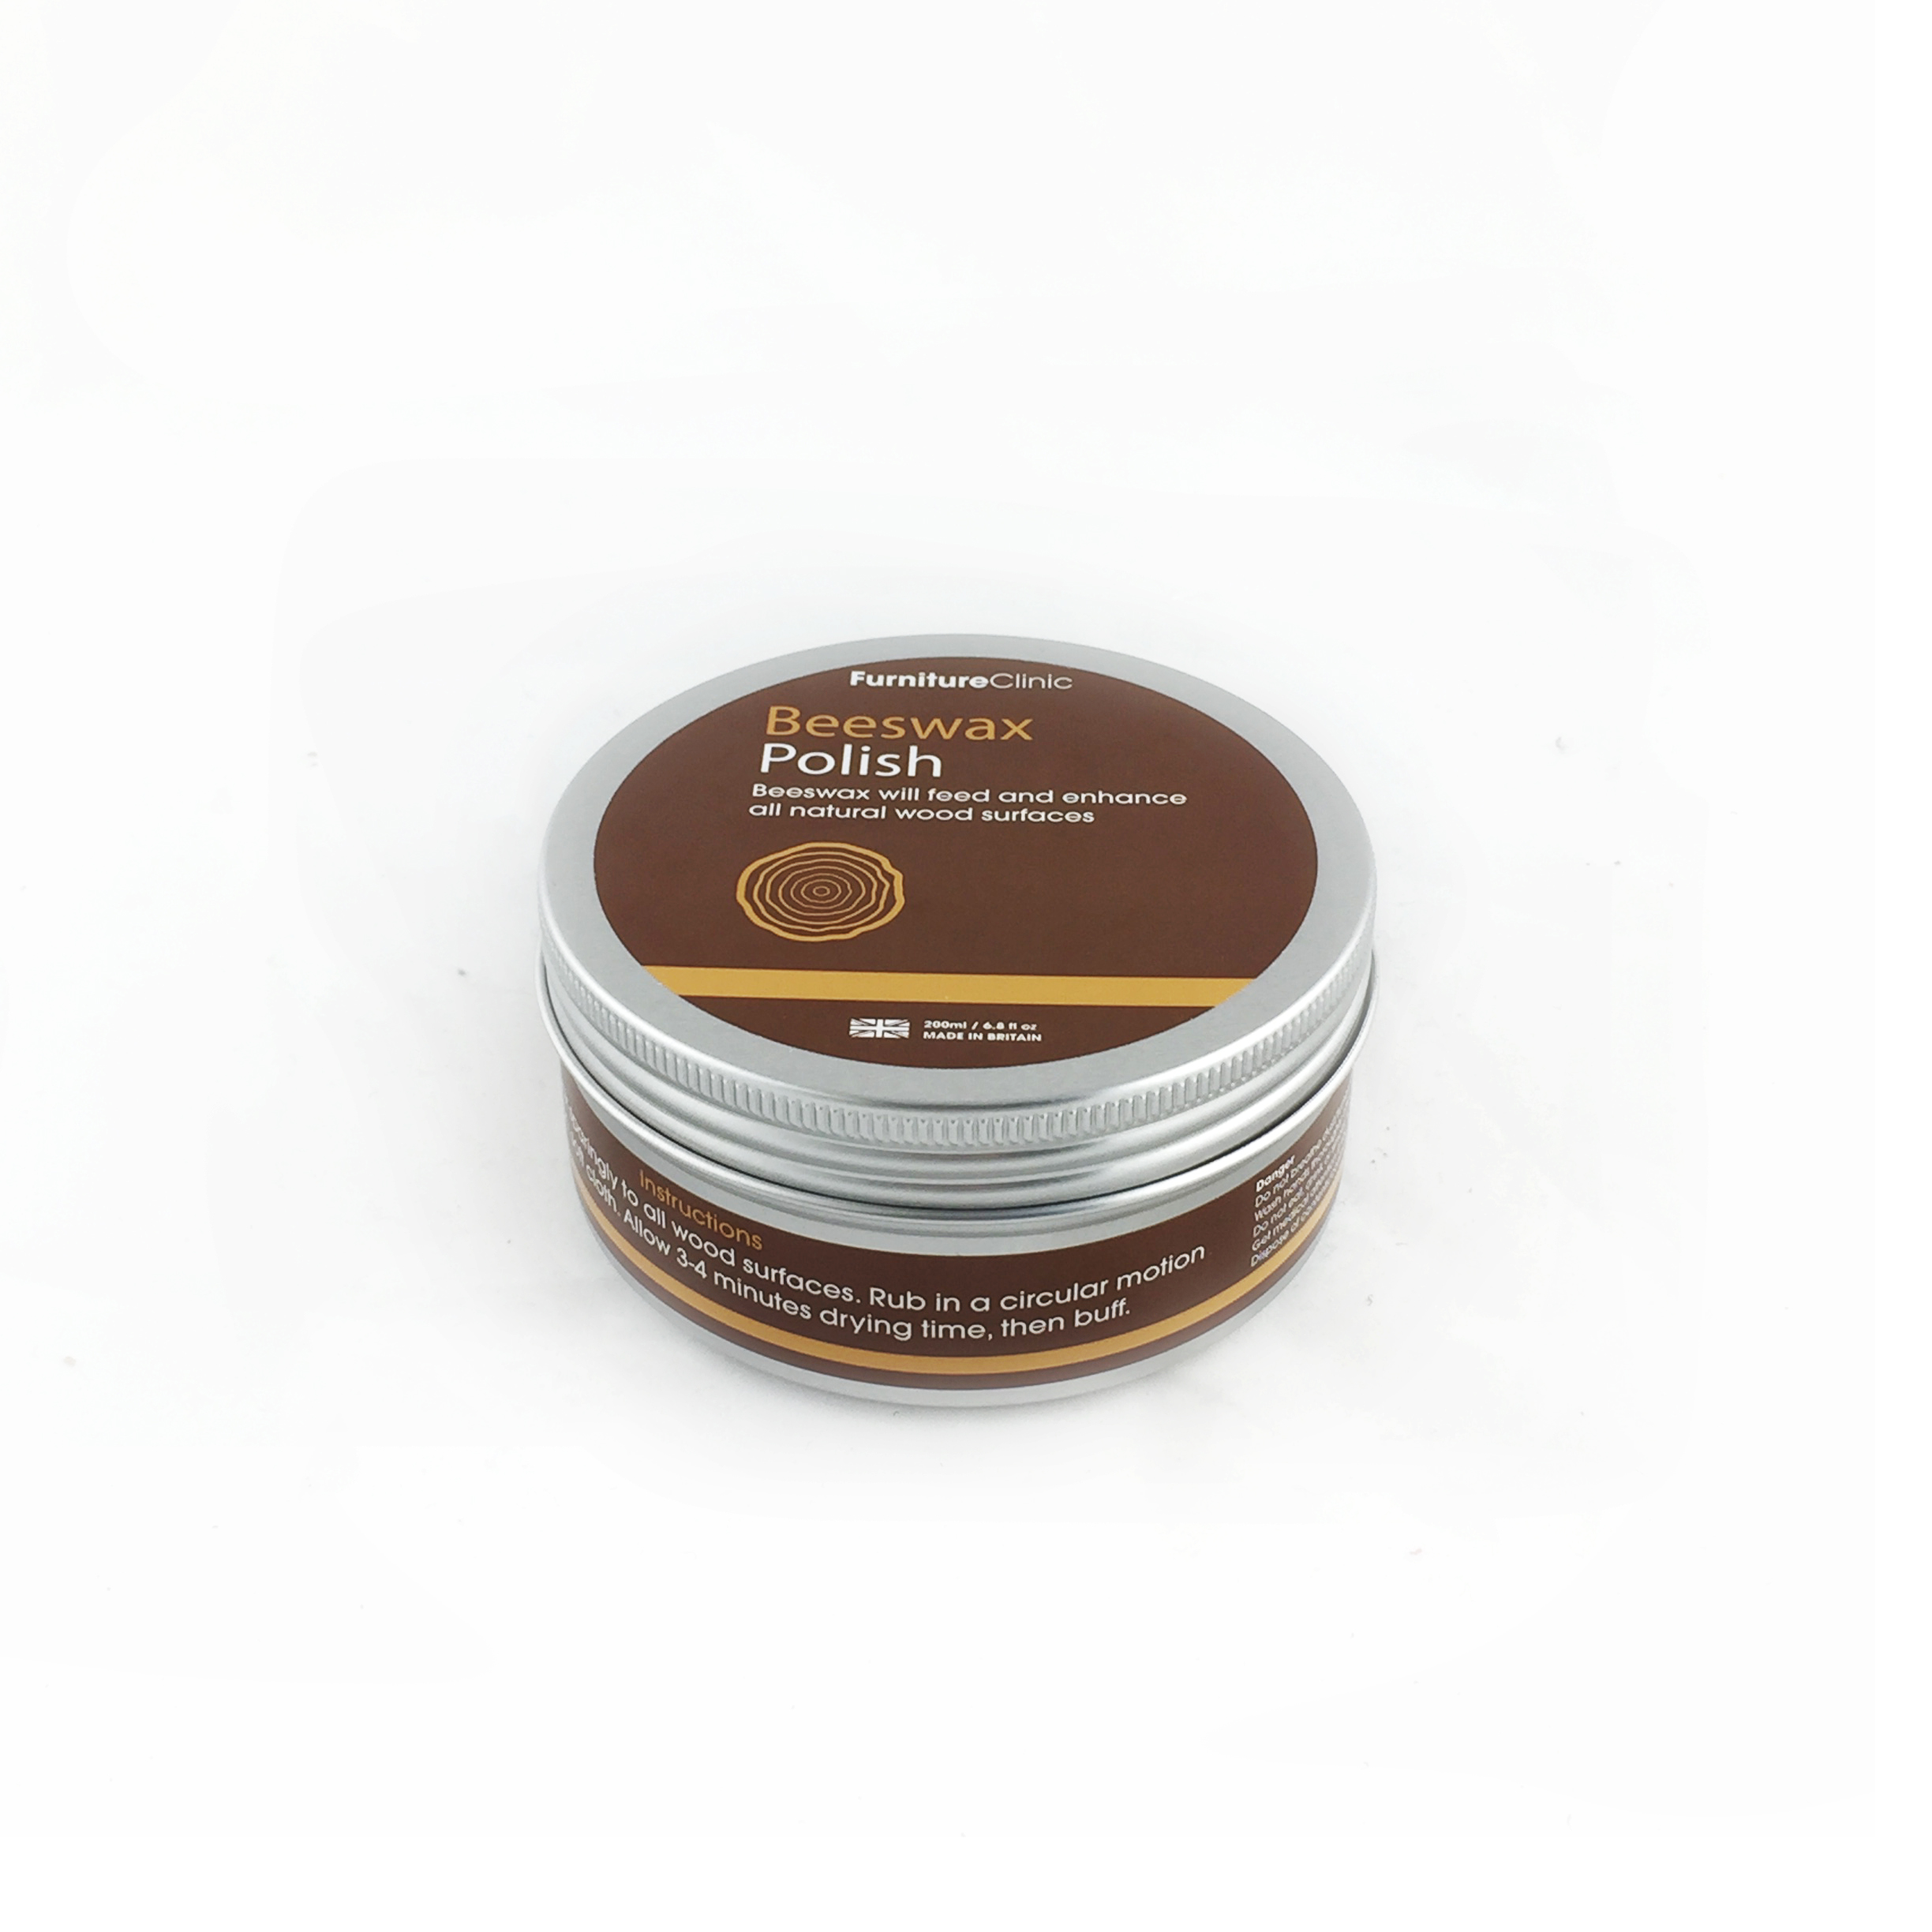 Beeswax Polish Natural Beeswax Polish For All Wooden Surfaces Furniture Clinic